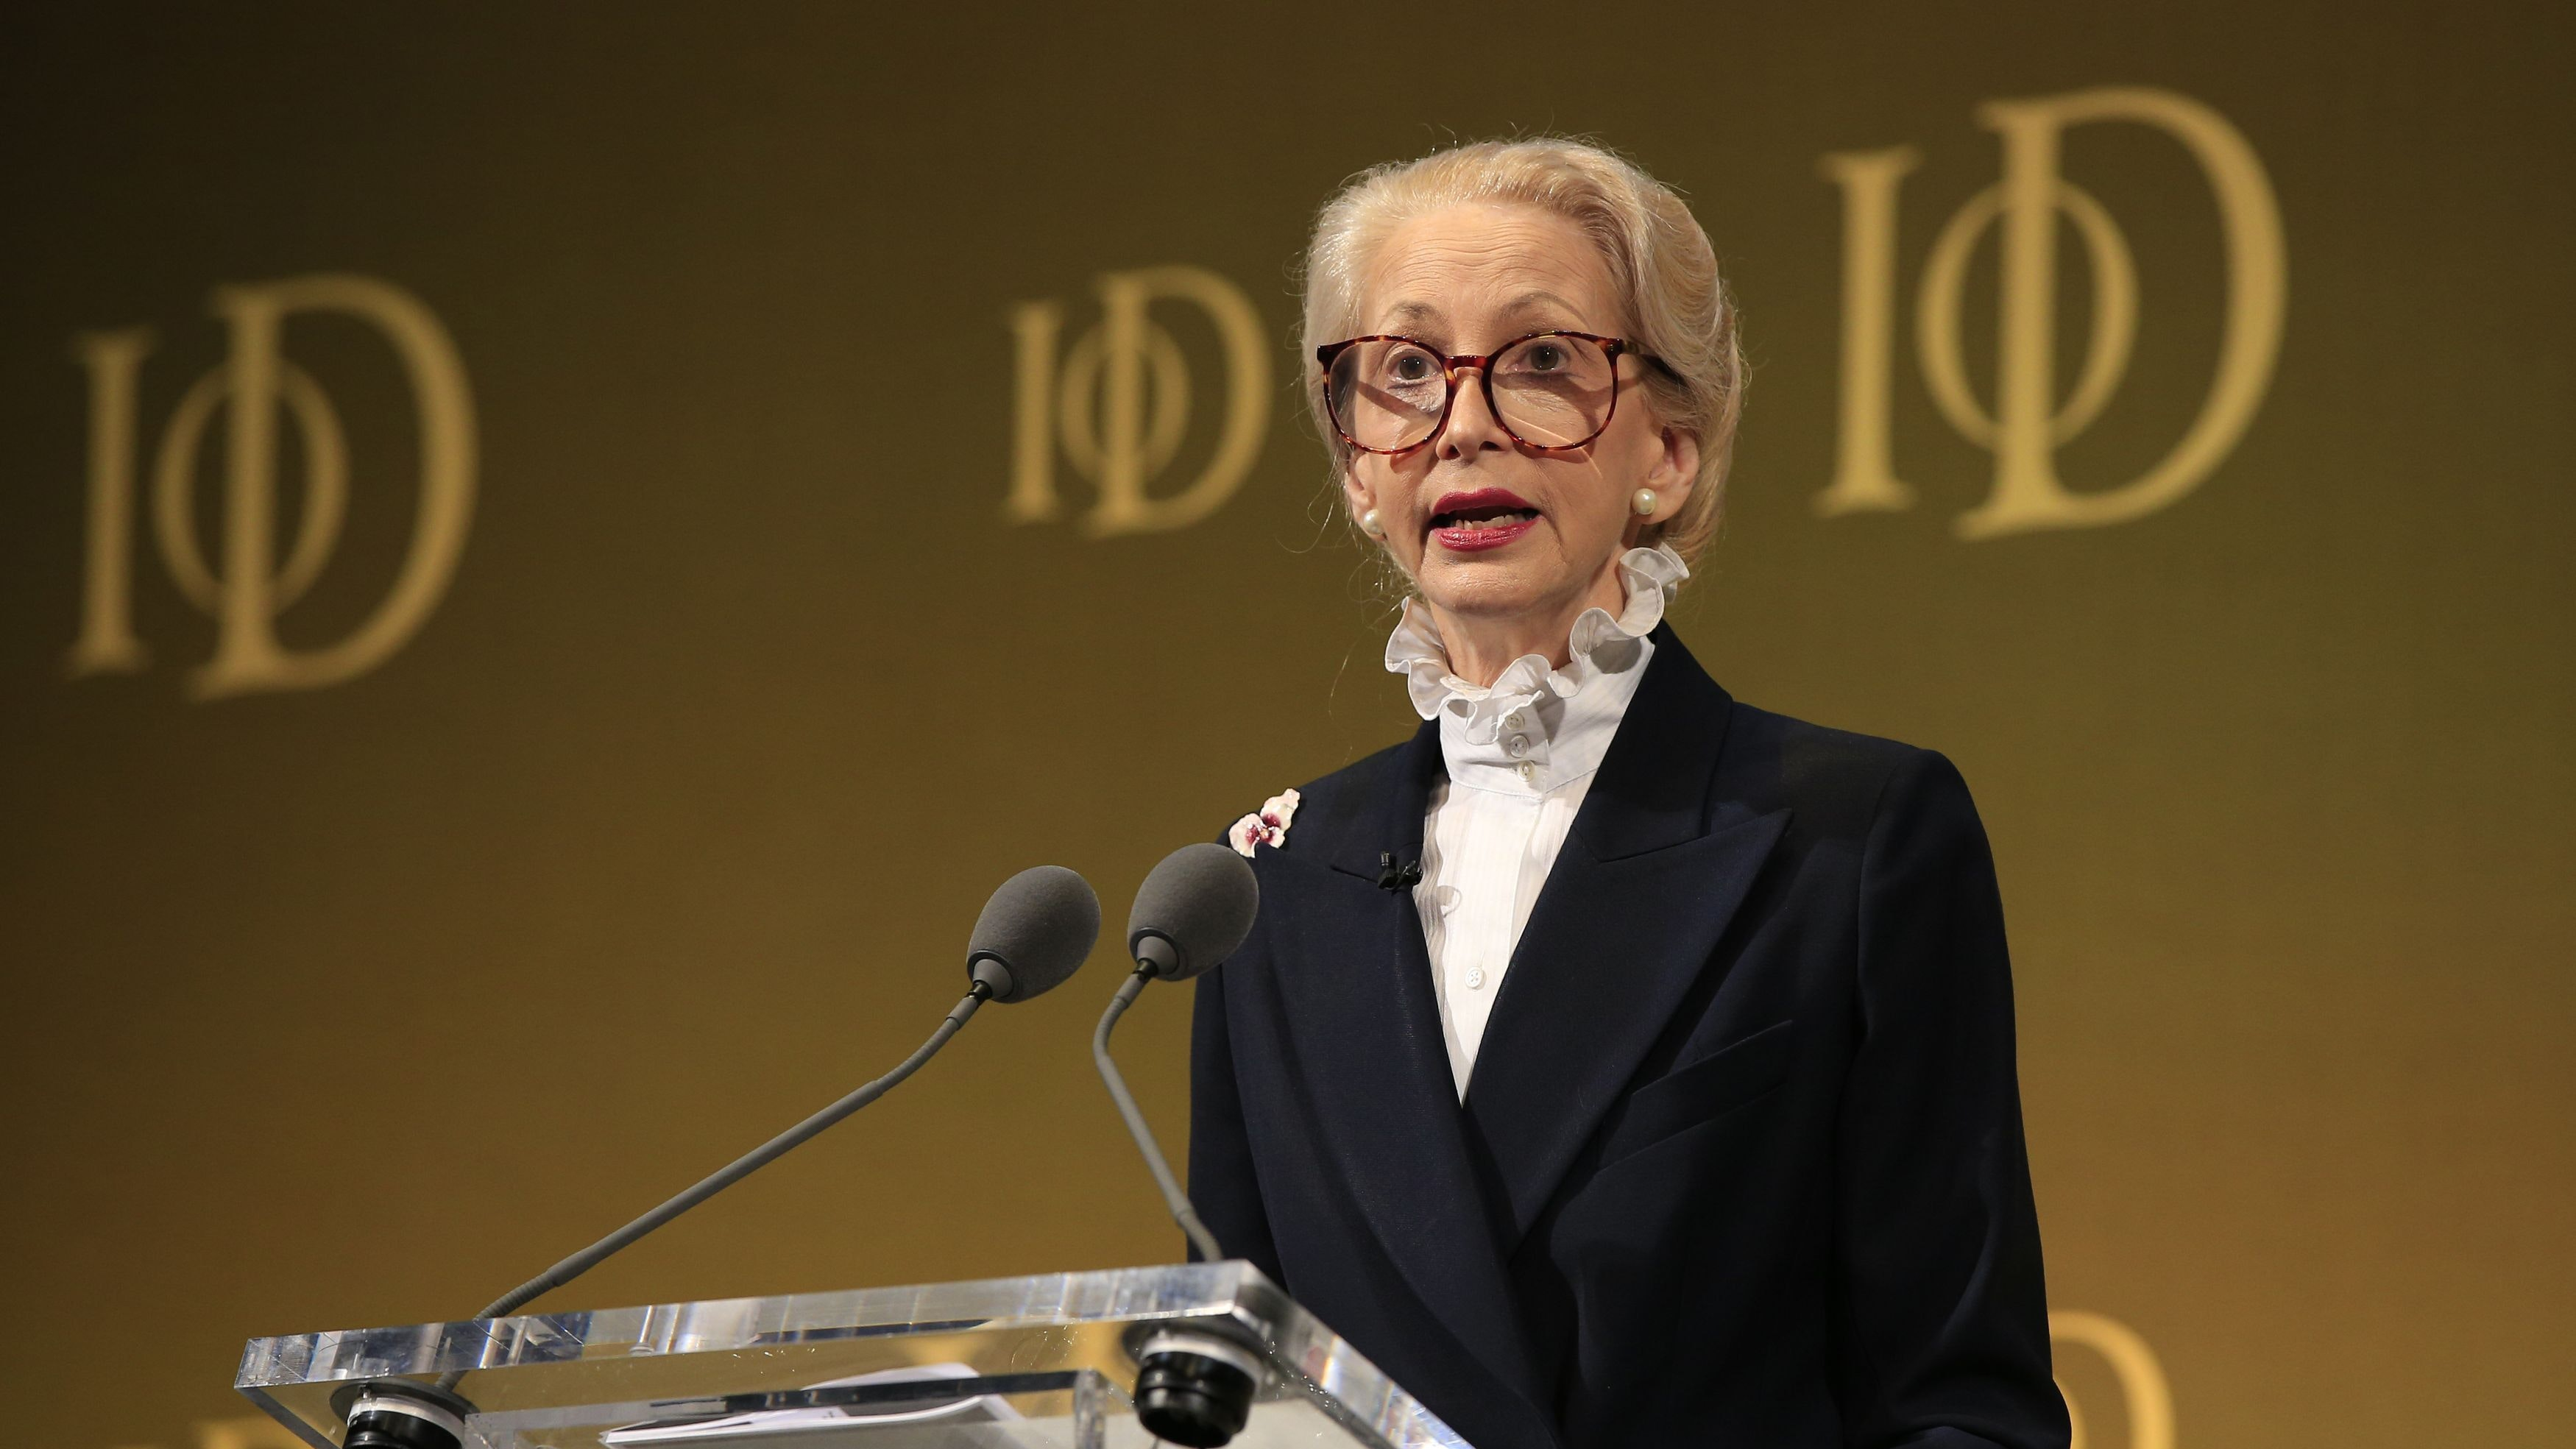 Institute of Directors suspends Barbara Judge amid claims of racism